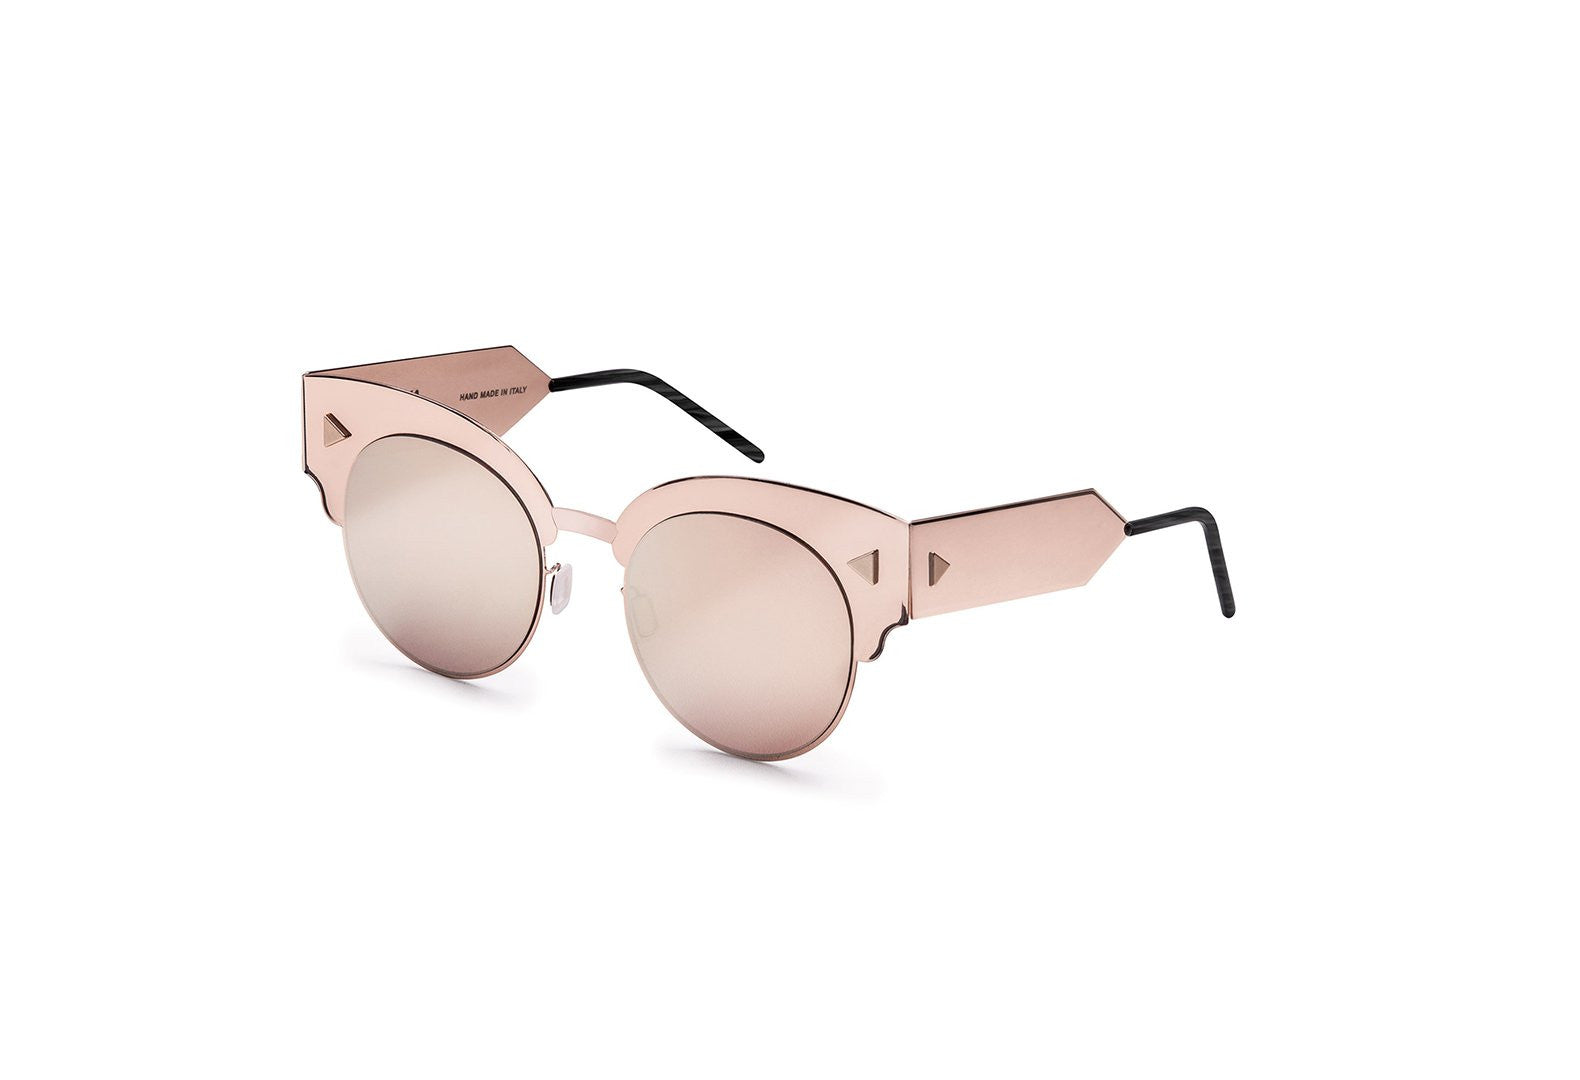 Milky Way Sunglasses - Lesetta